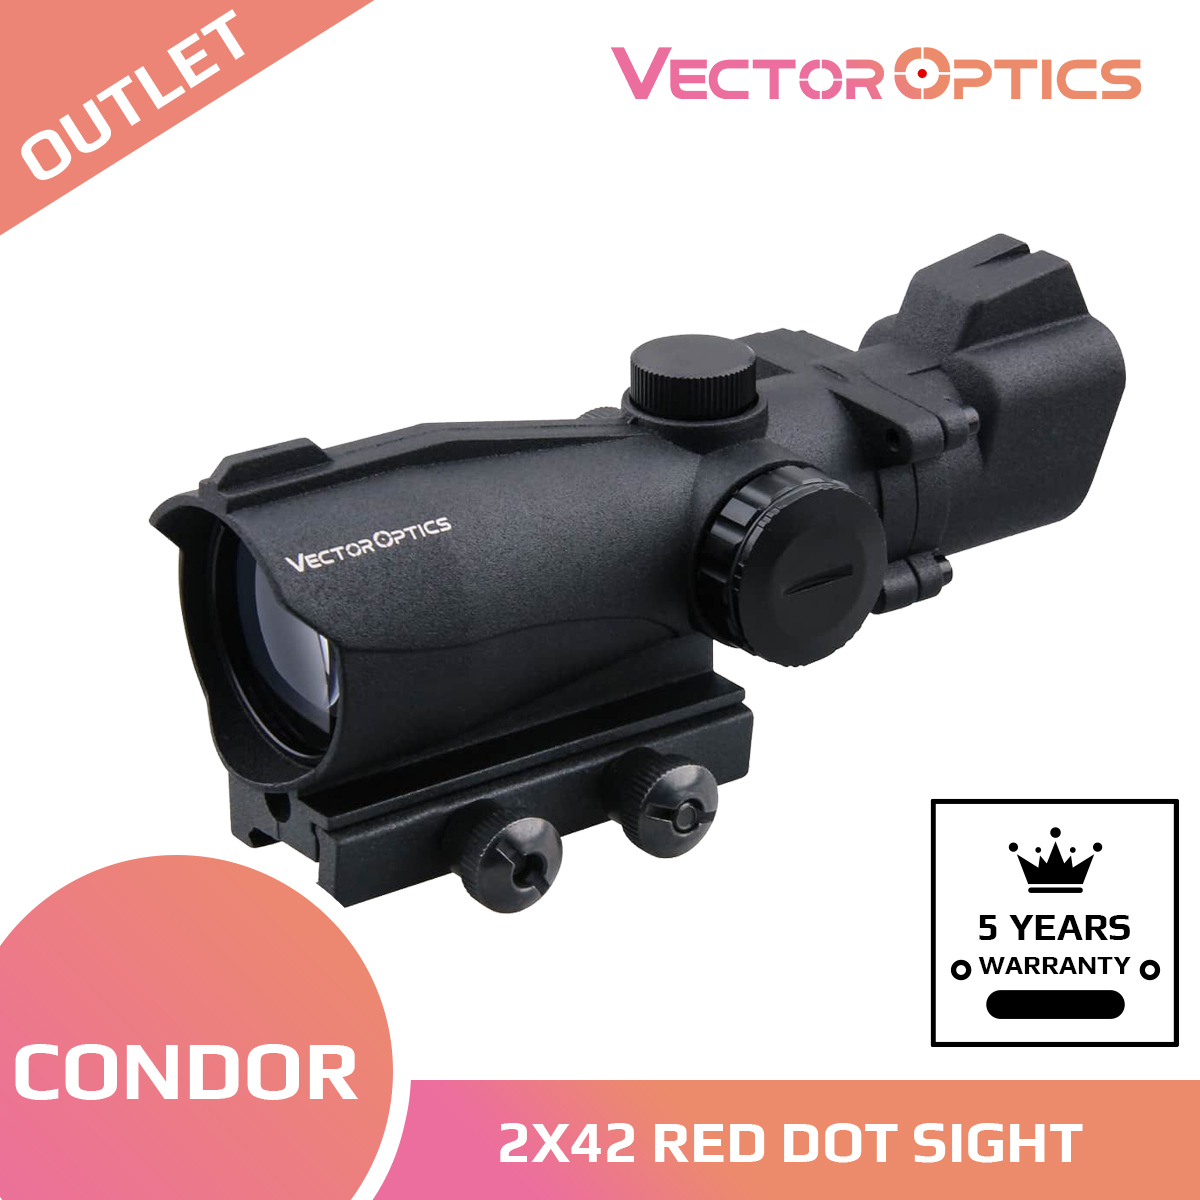 Vector Optics Condor 2x42 Green / Red Dot Scope Weapon Sight Front Rear Iron Sight Hunting Shooting 2 Times Magnification 5 MOA